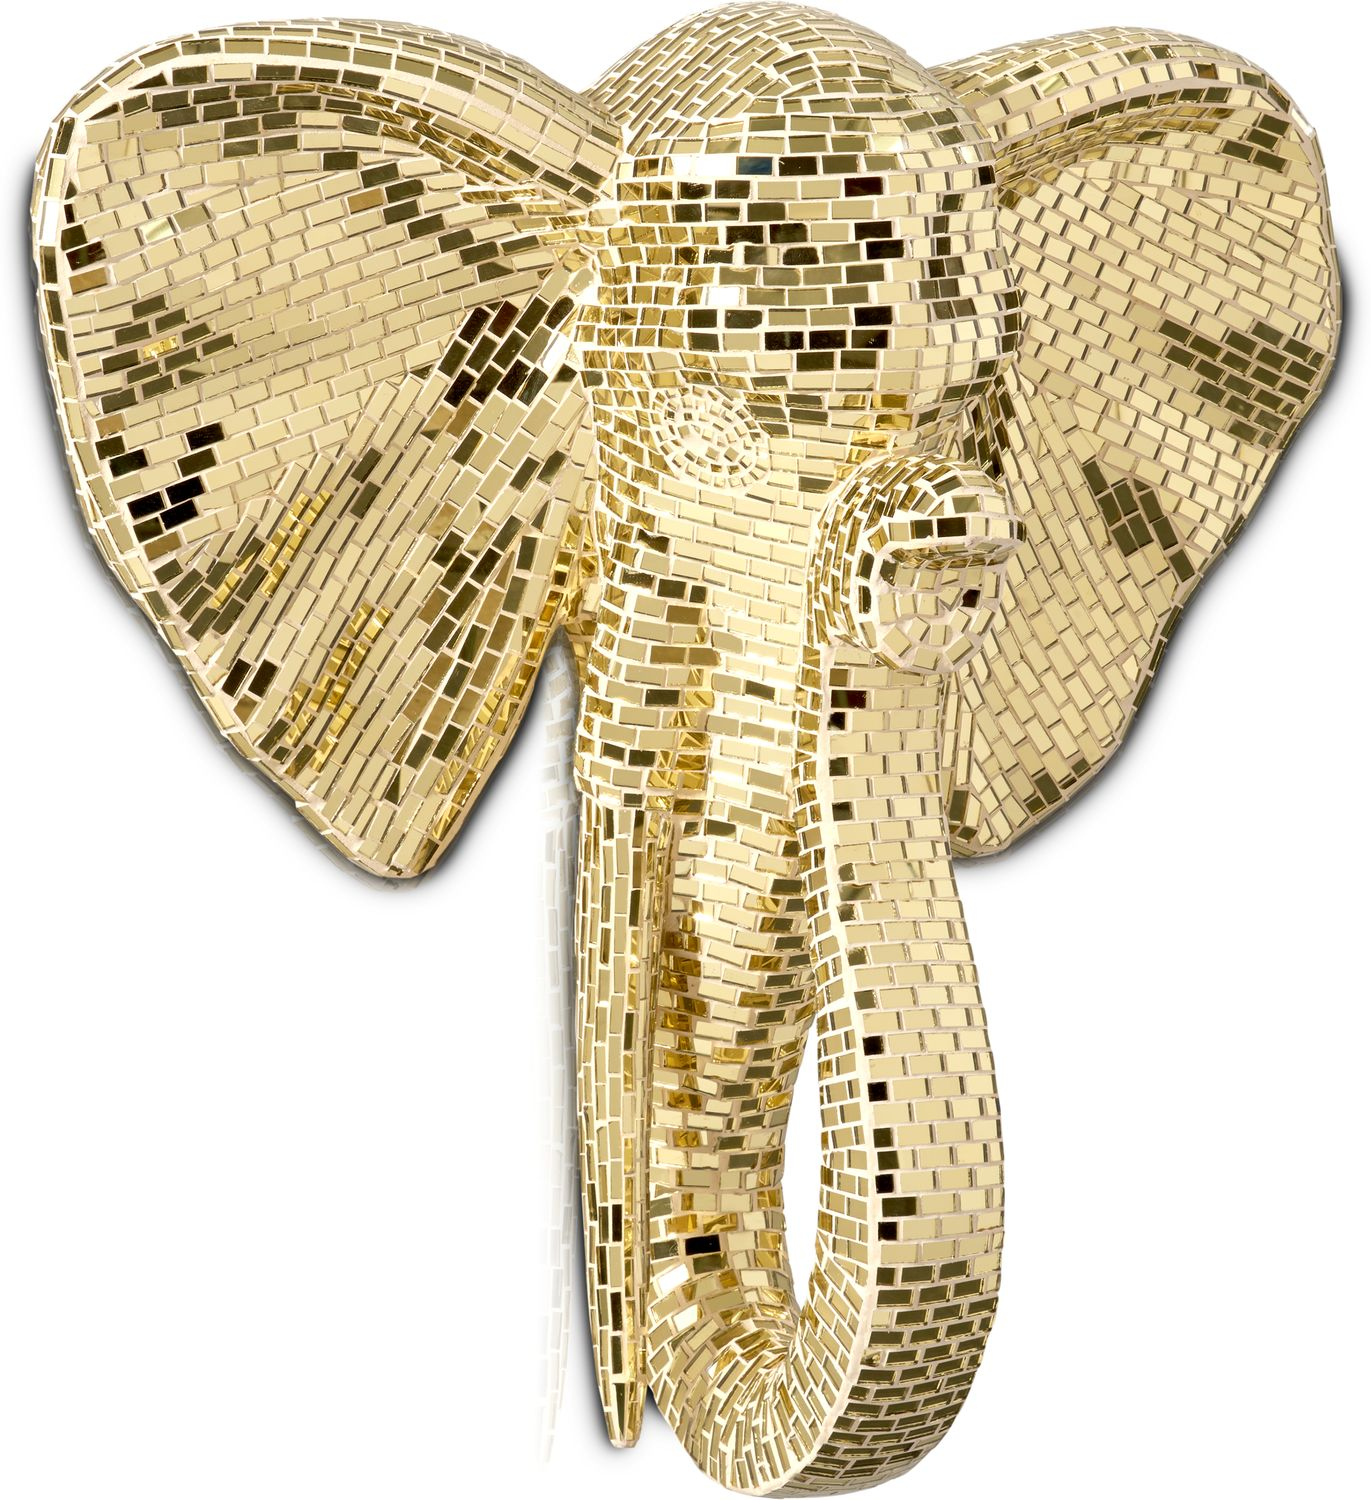 Home Accessories - Elephant Head Wall Art - Gold